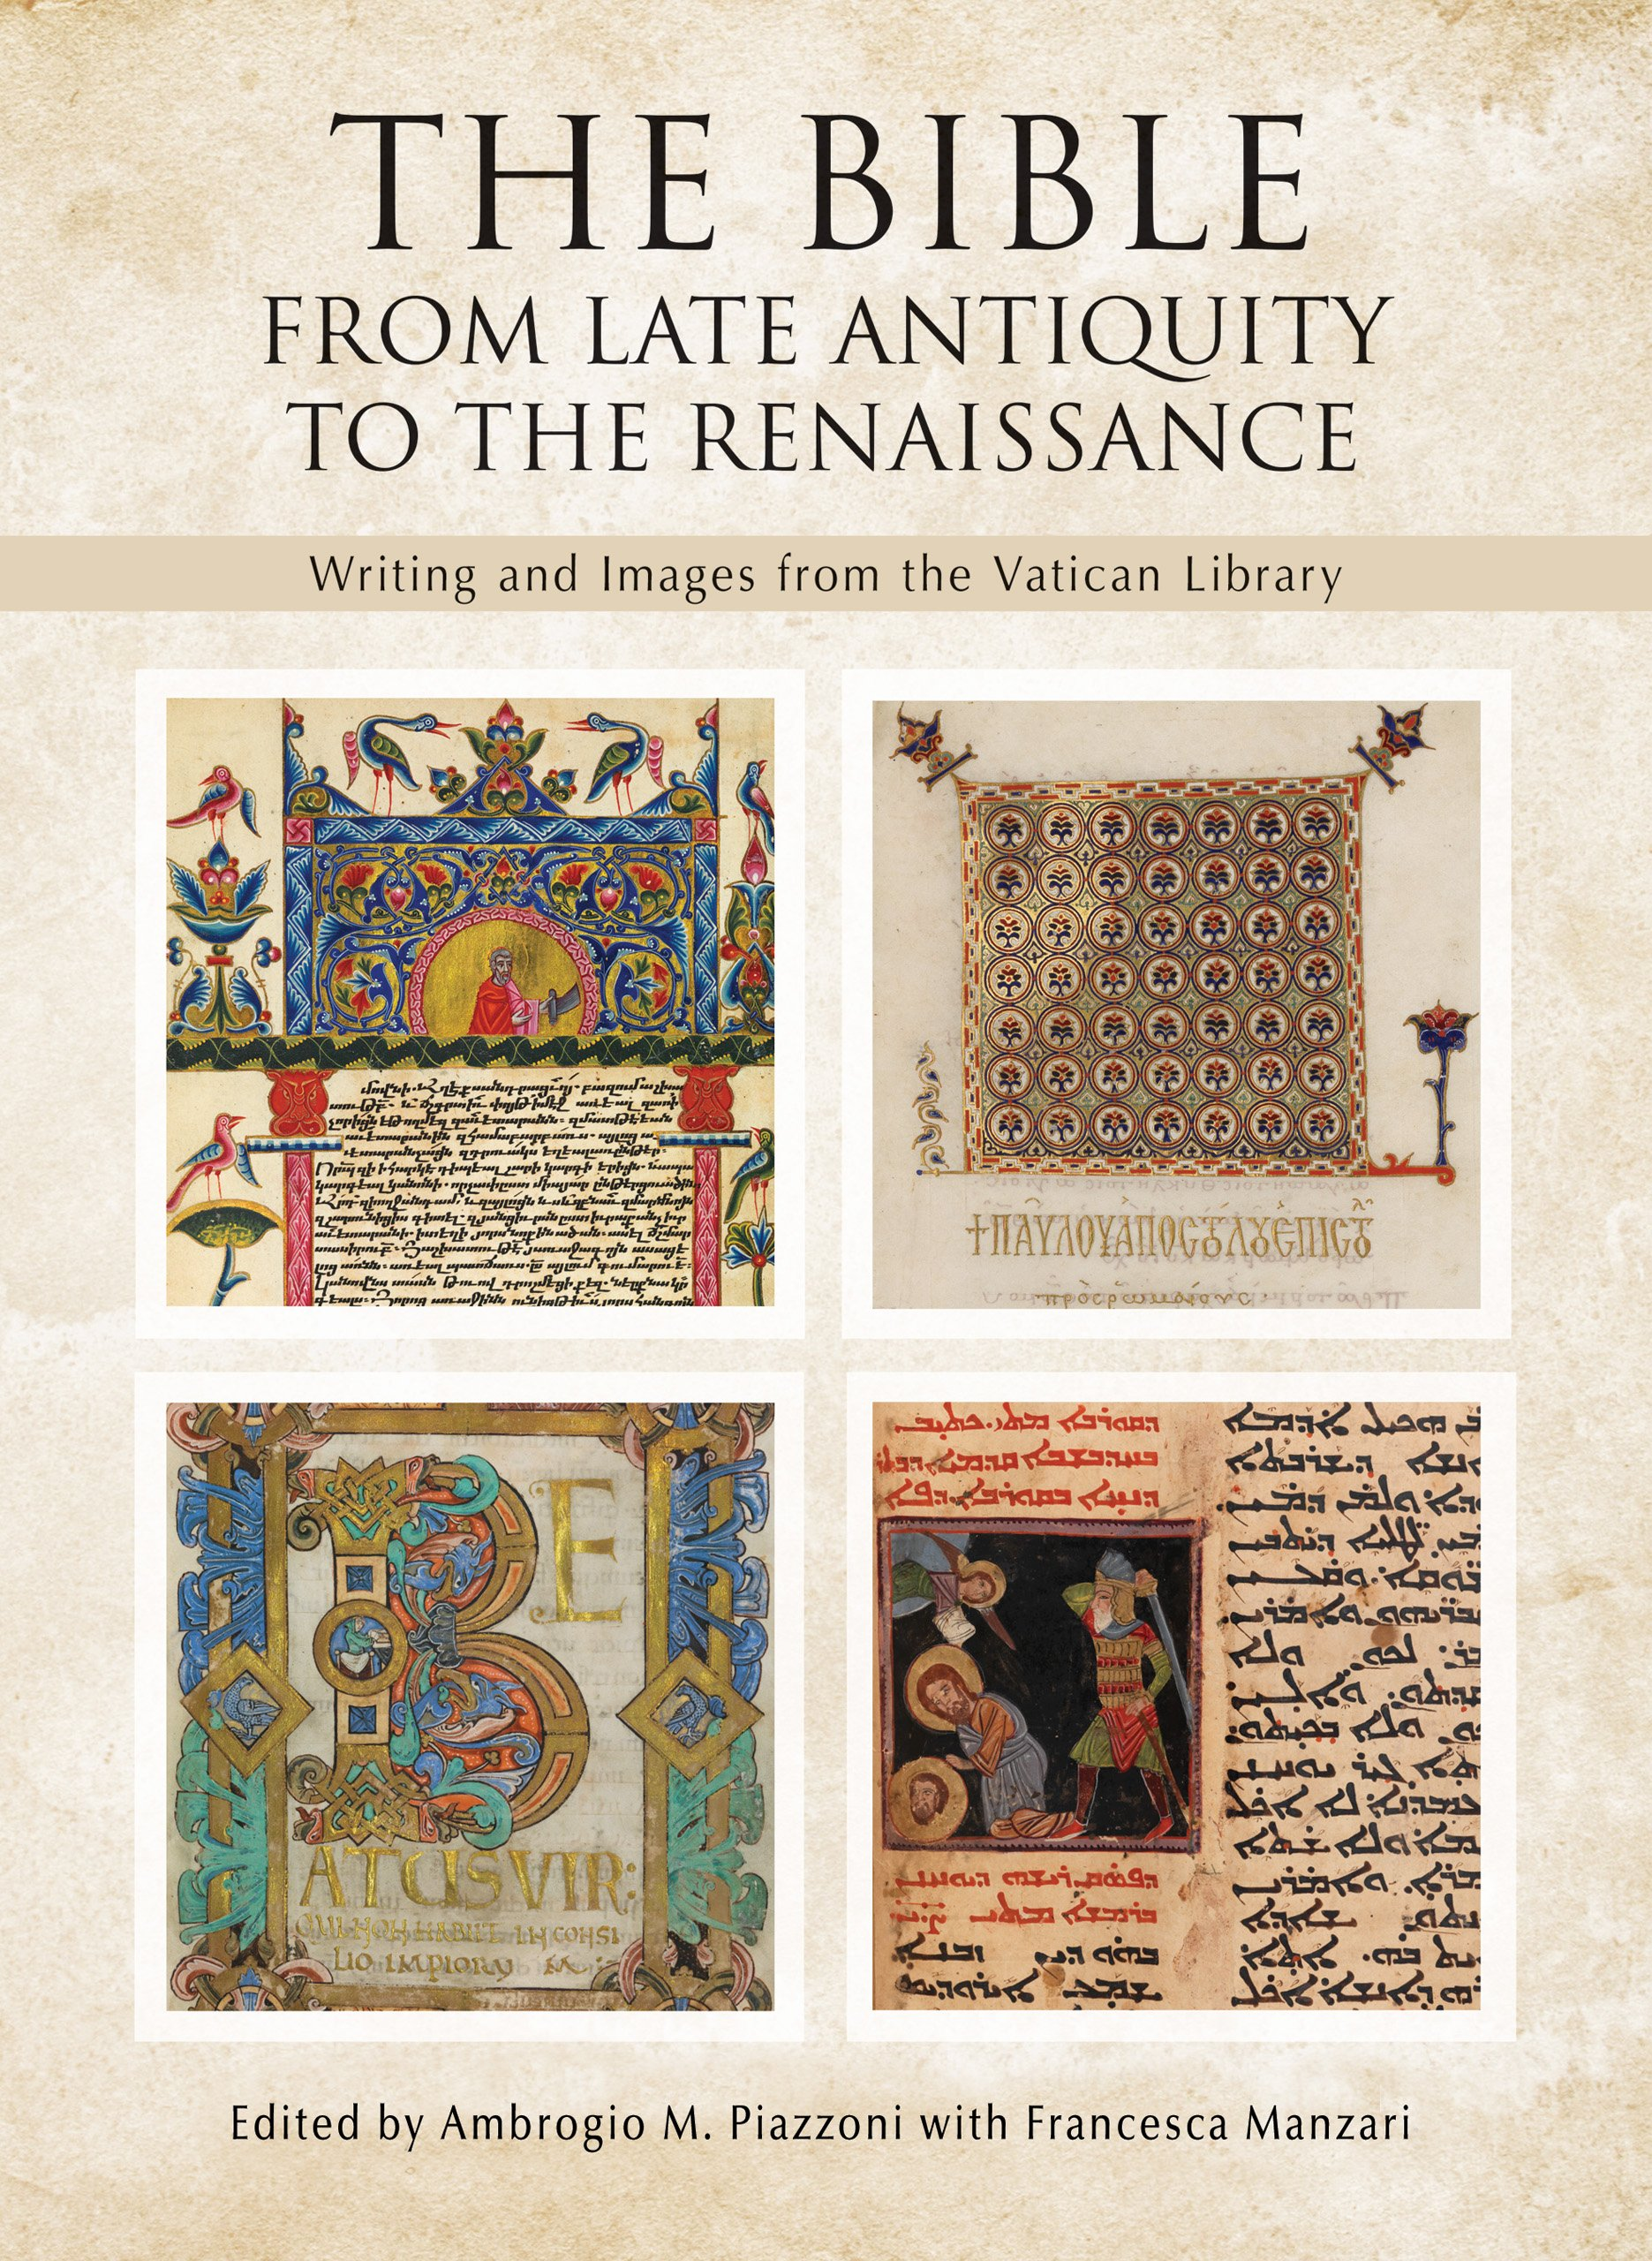 The Bible: From Late Antiquity to the Renaissance: Writing and Images from the Vatican Library